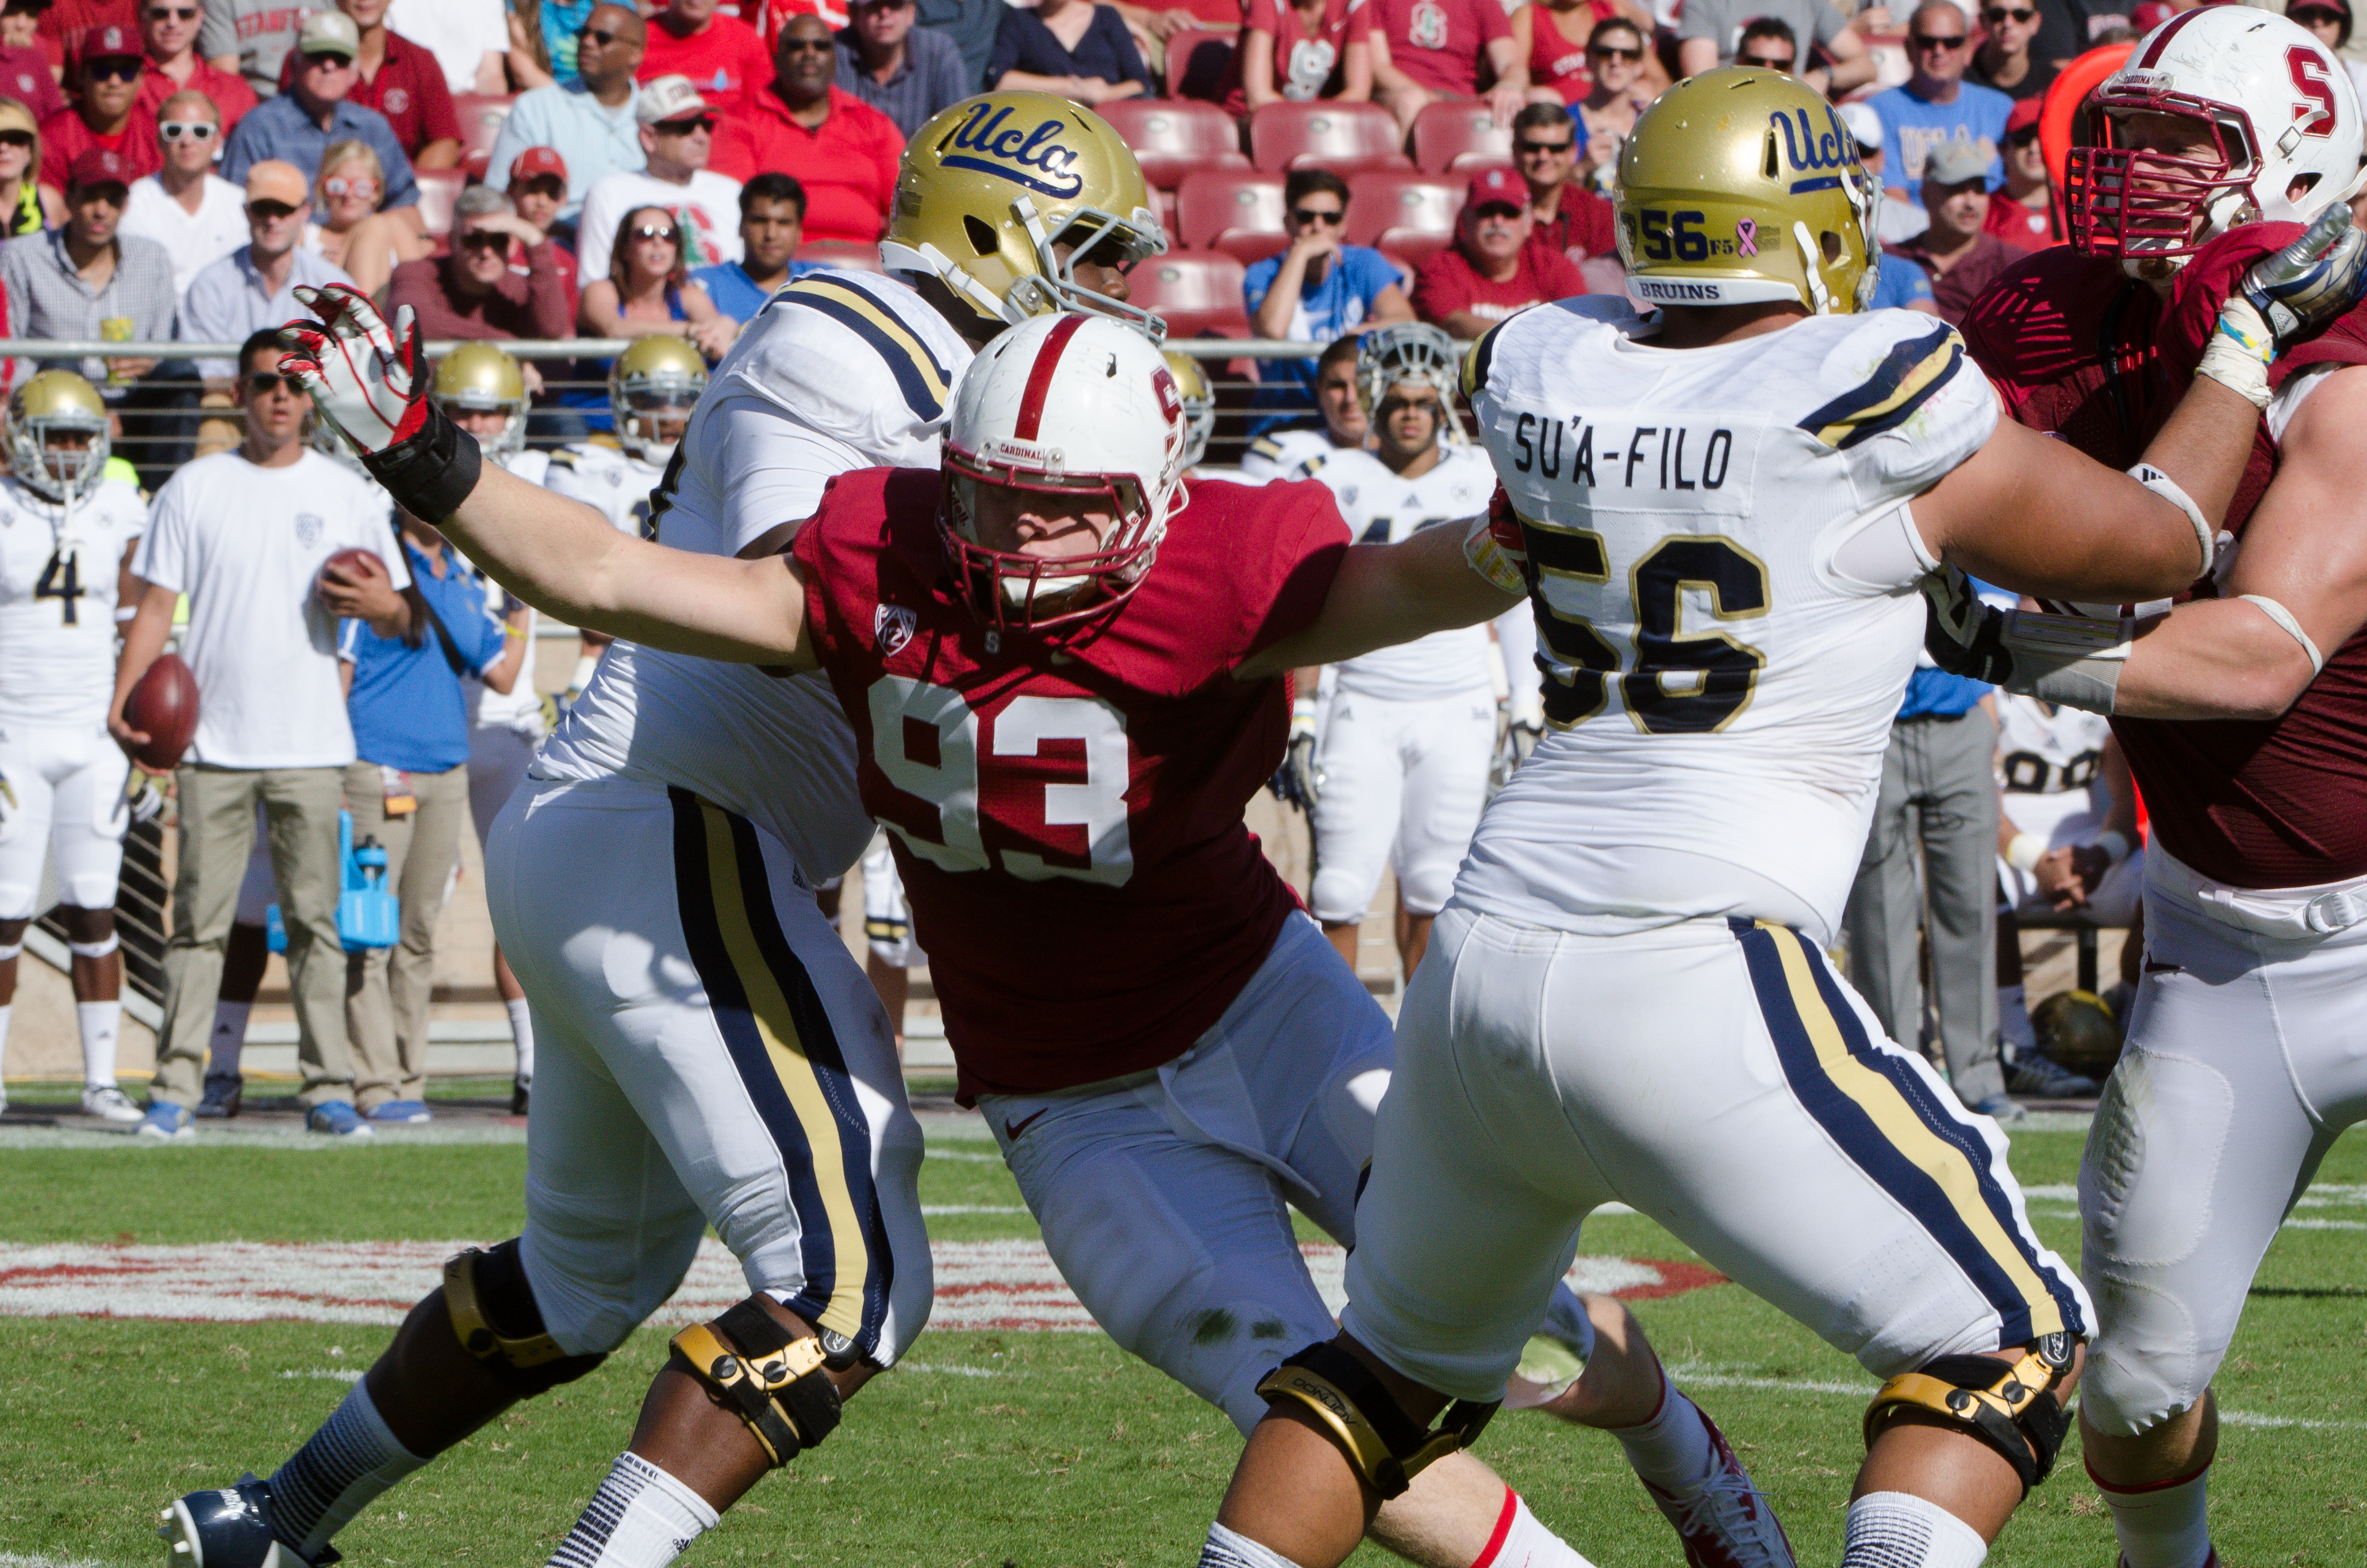 Trent Murphy breaks through a tough offensive line. (Courtesy of Cynthia Yock)